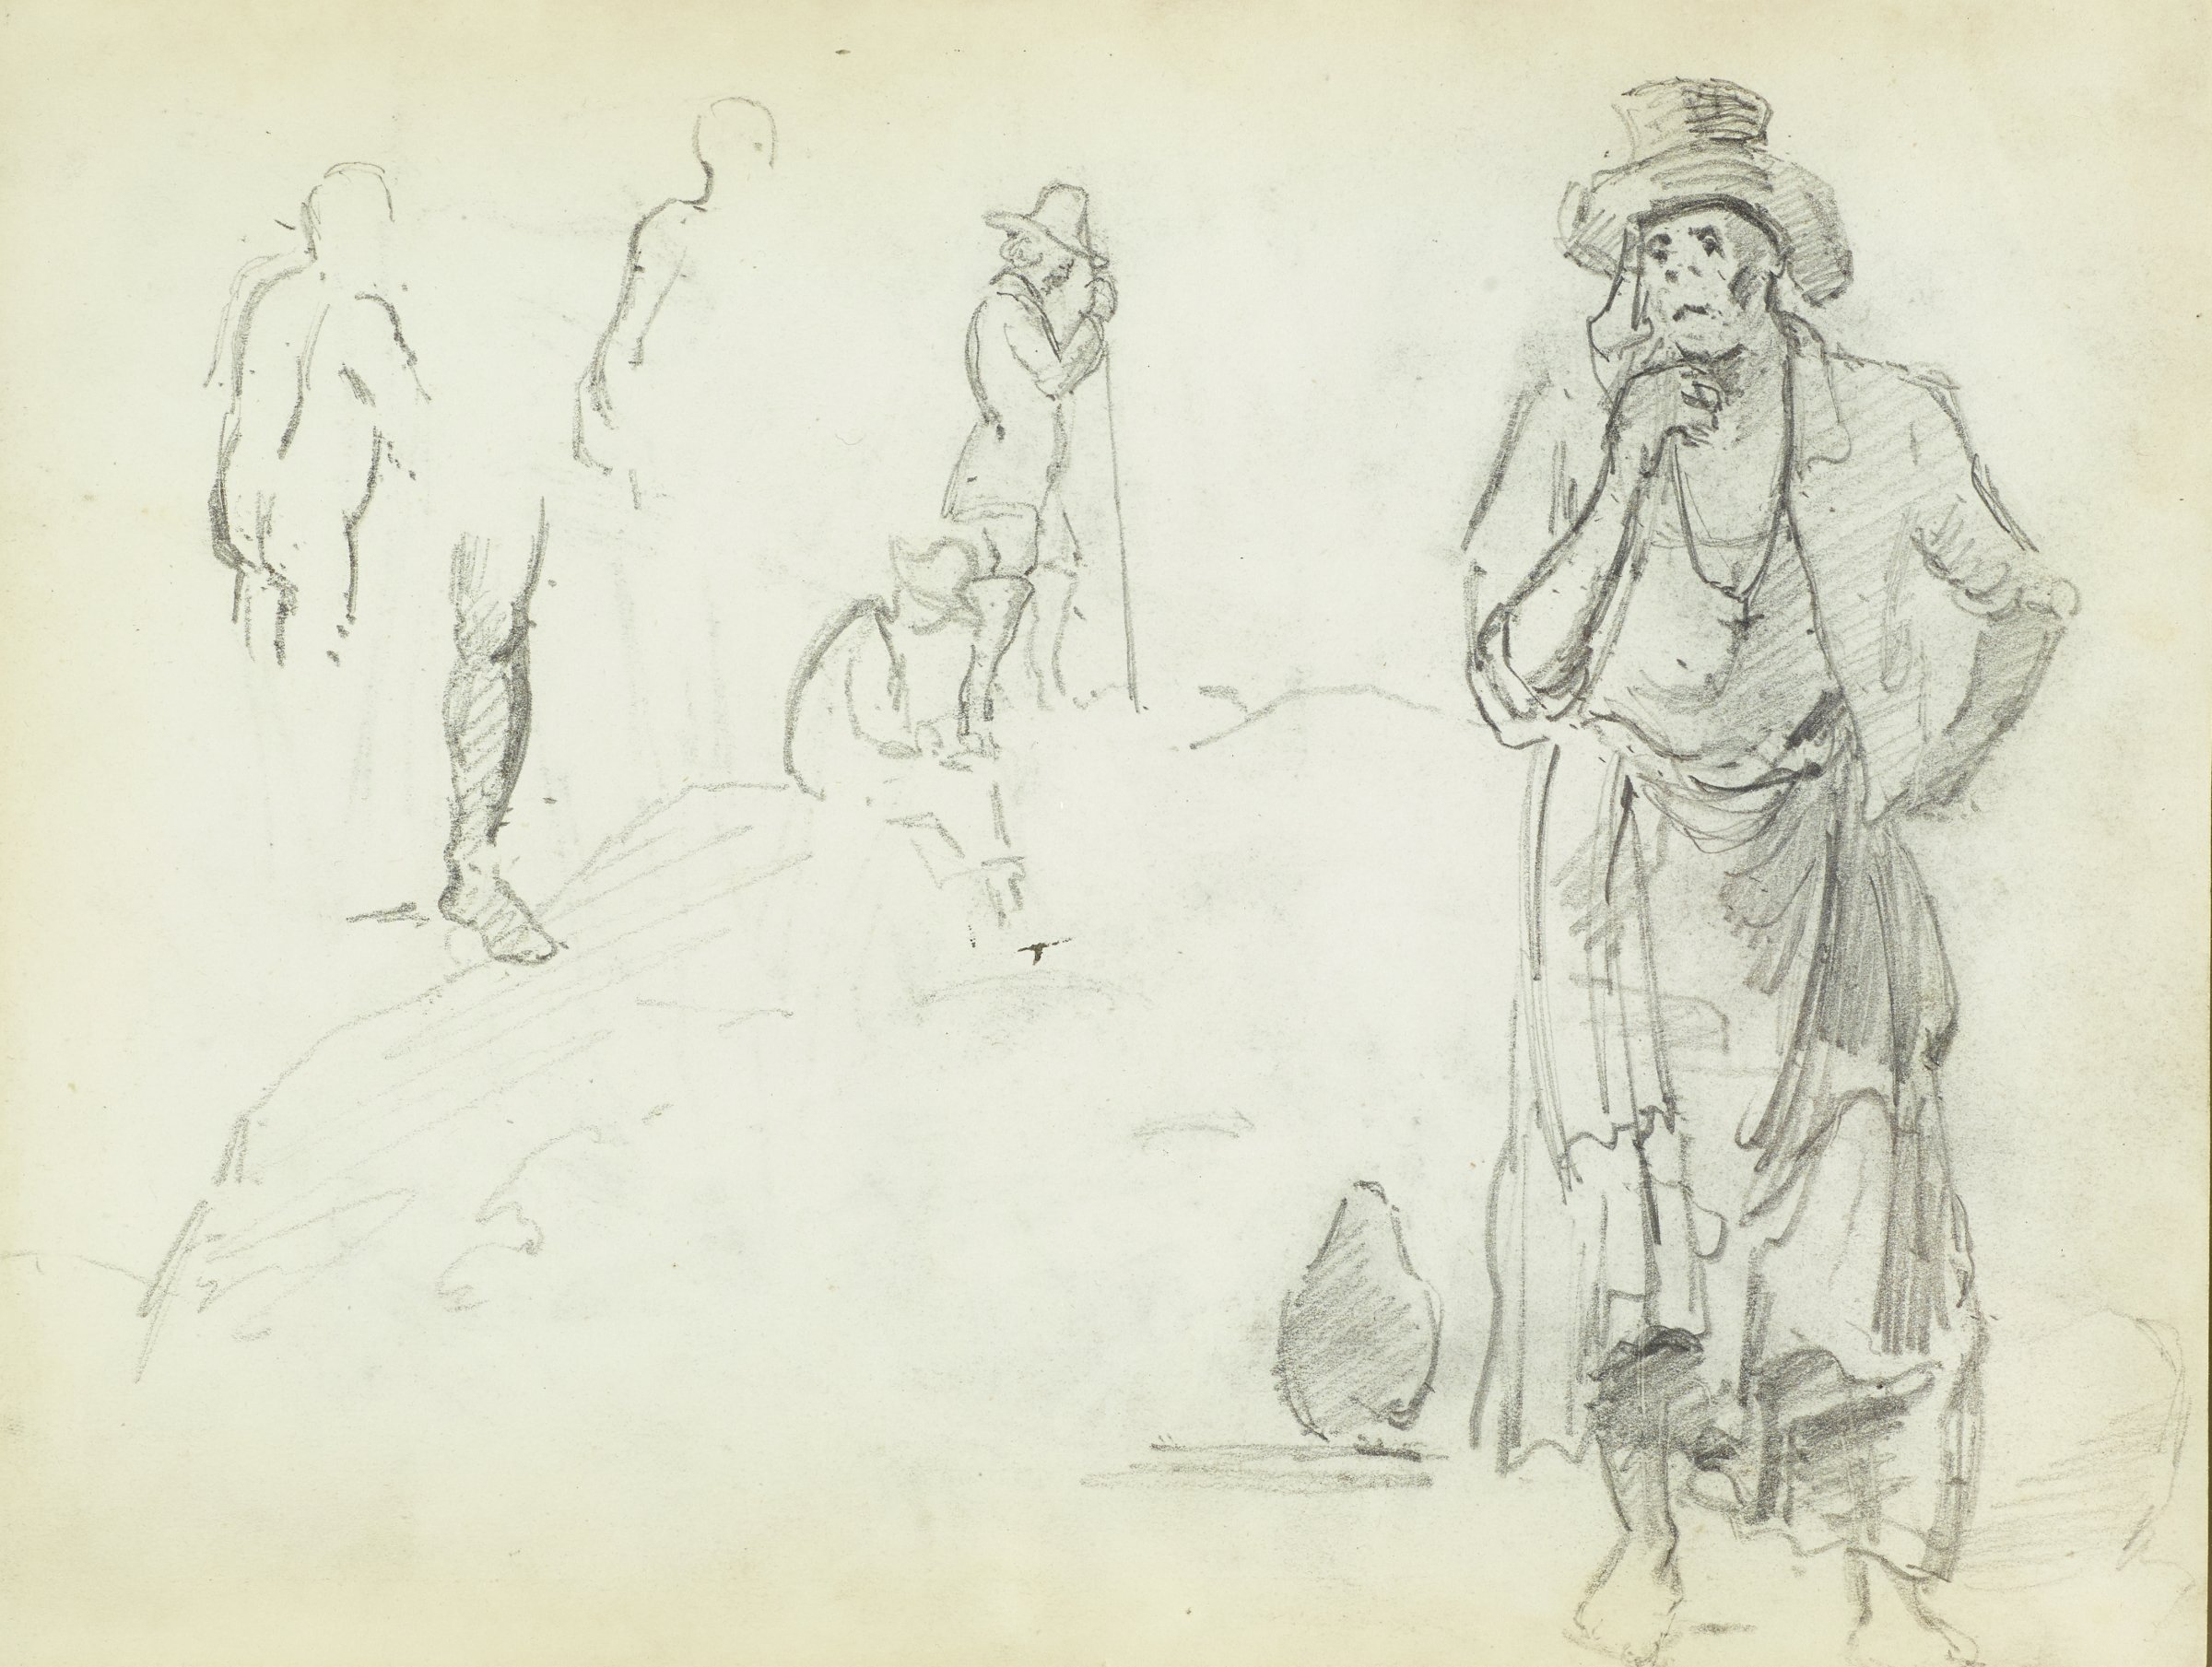 Recto: Full length frontal figure of standing man to the right of sheet; to the left are sketches of men in profile and a leg.Verso: Images are upside down, in orientation to recto. Three sketches of female figures, two full-length, profile views to the left. One woman with hat, another with scarf. Looser sketch of third woman, in center of sheet.